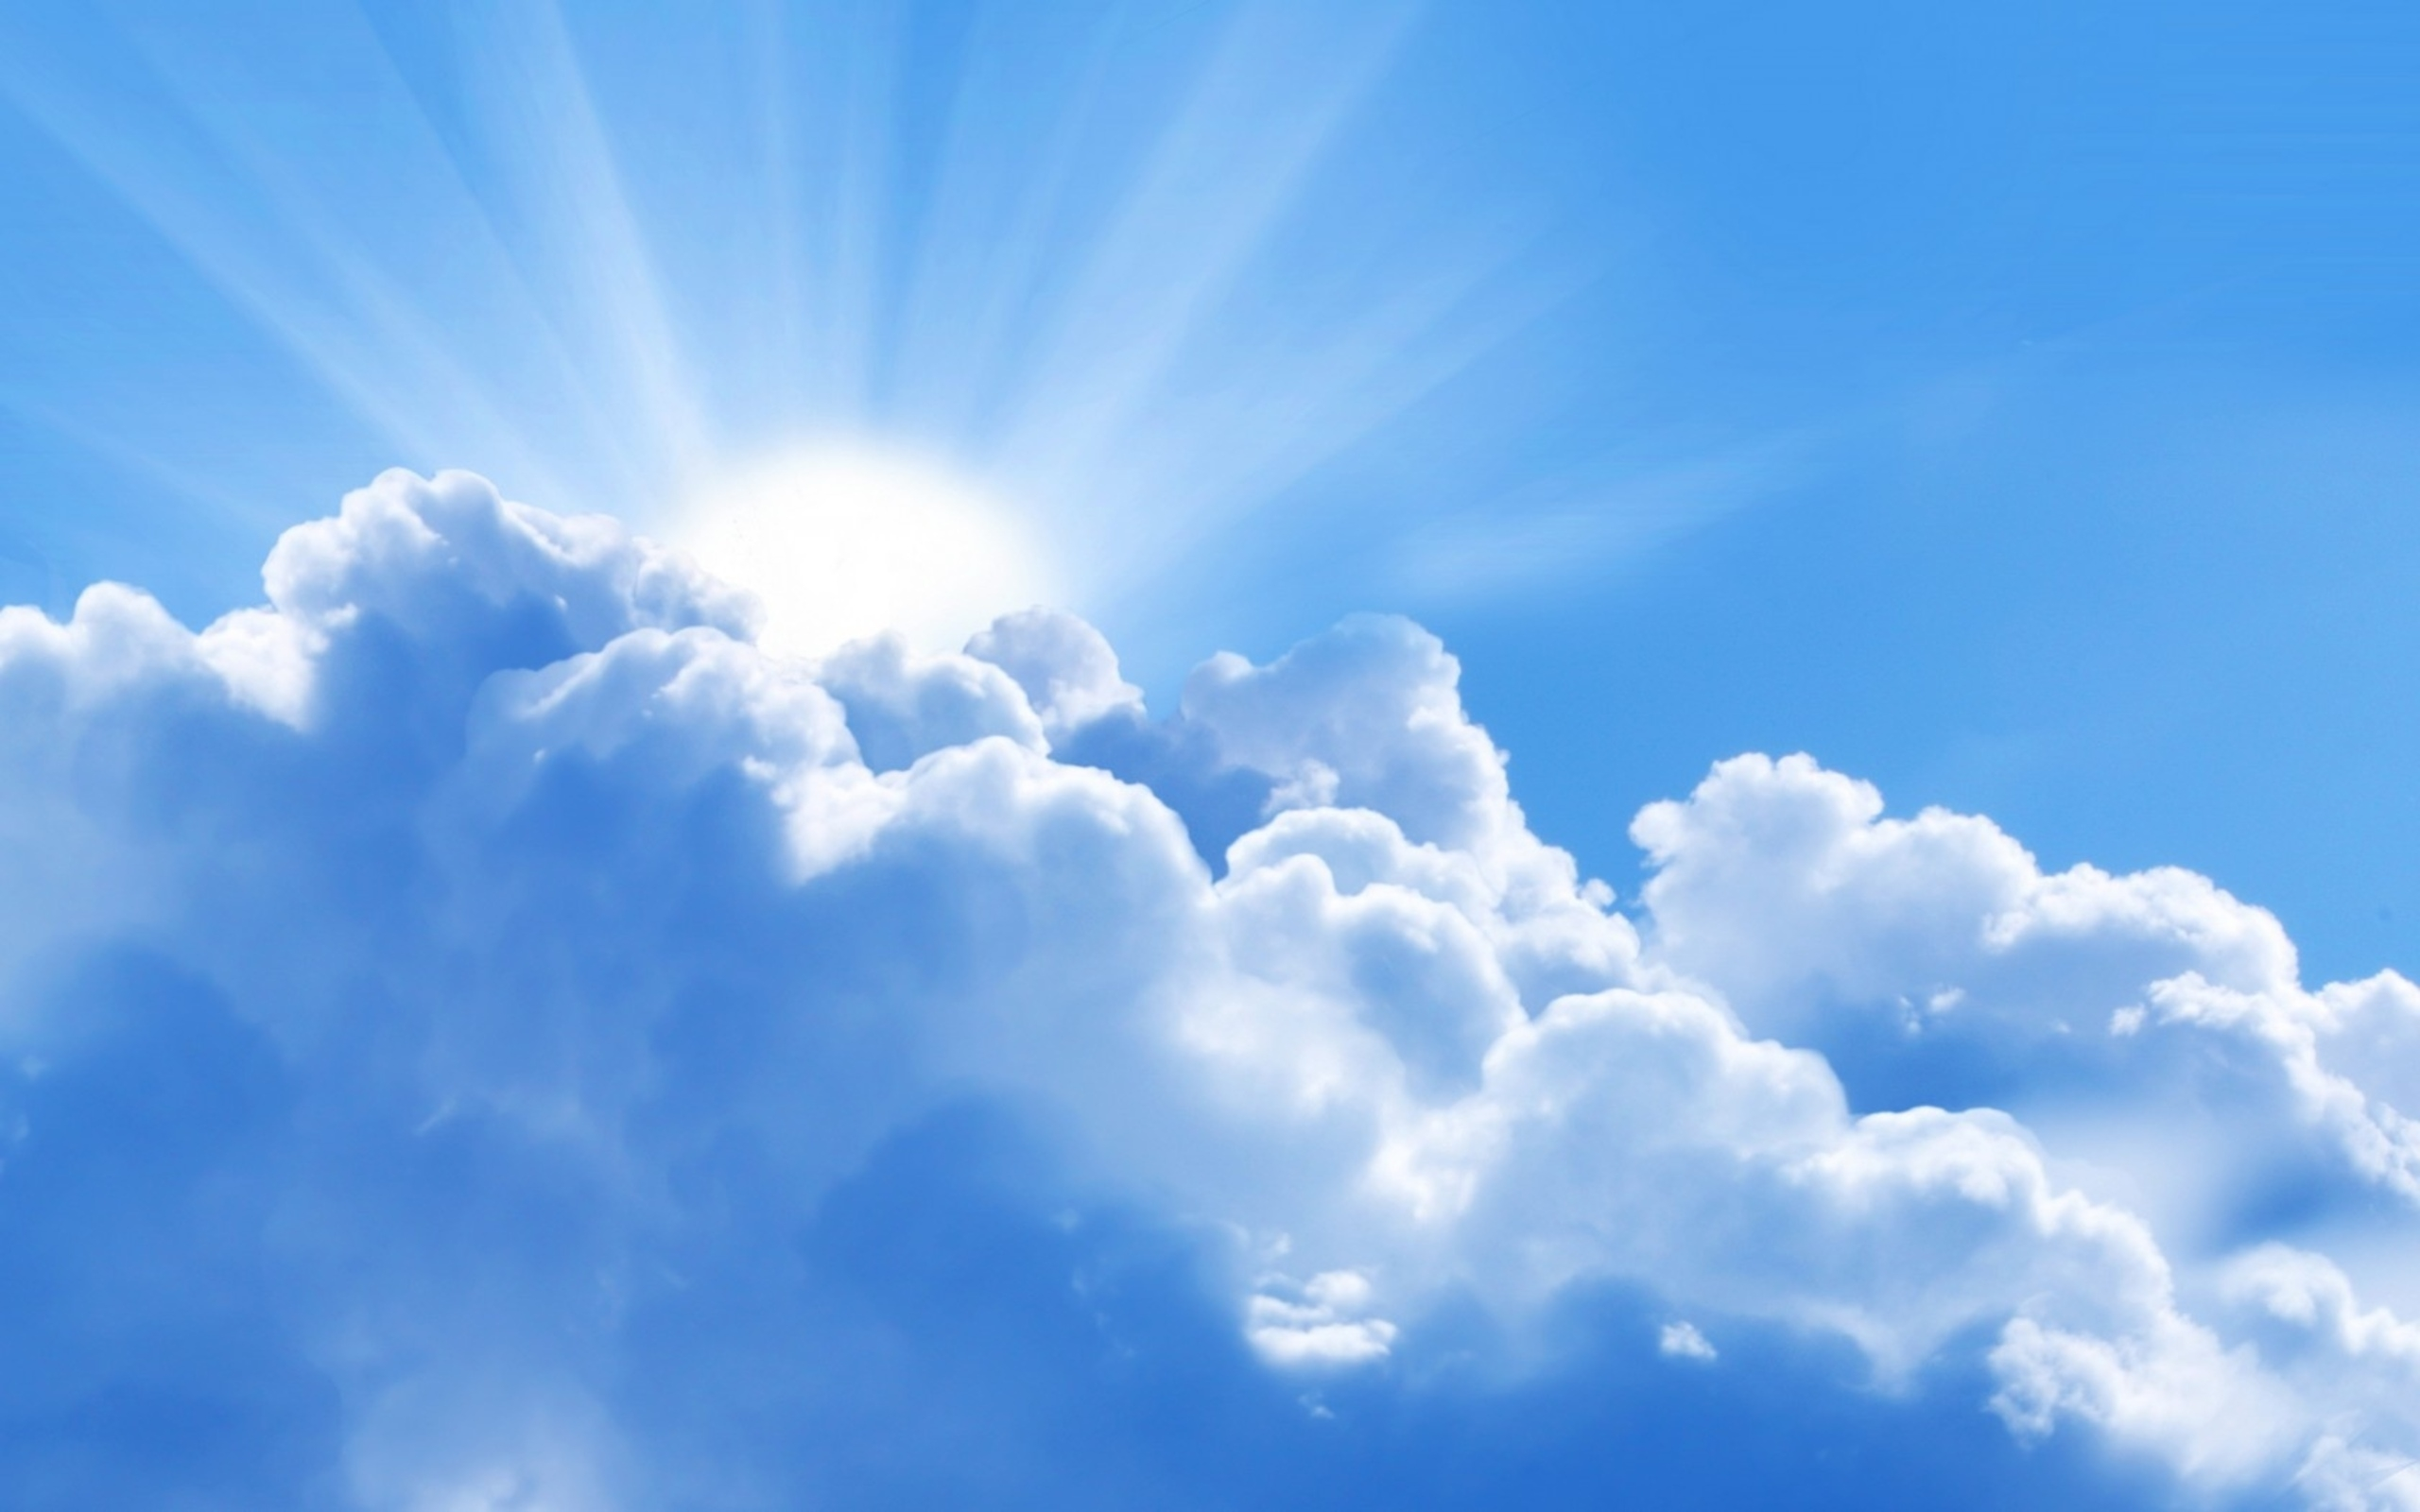 Sunbeams through the Cloud Wallpaper 358.22 Kb